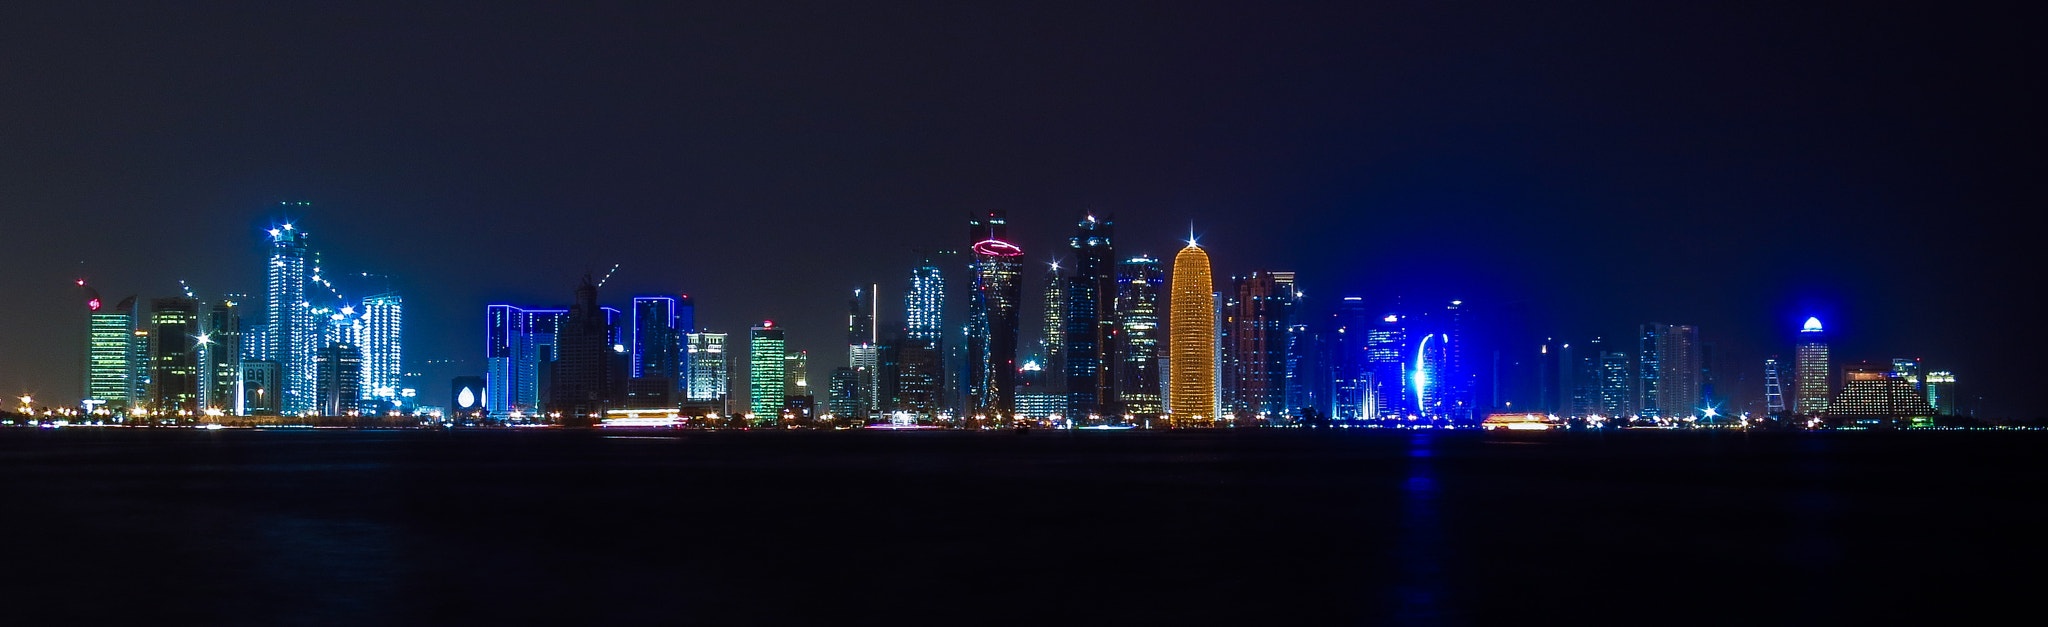 Photograph Doha by night by Ian  Mégevand on 500px